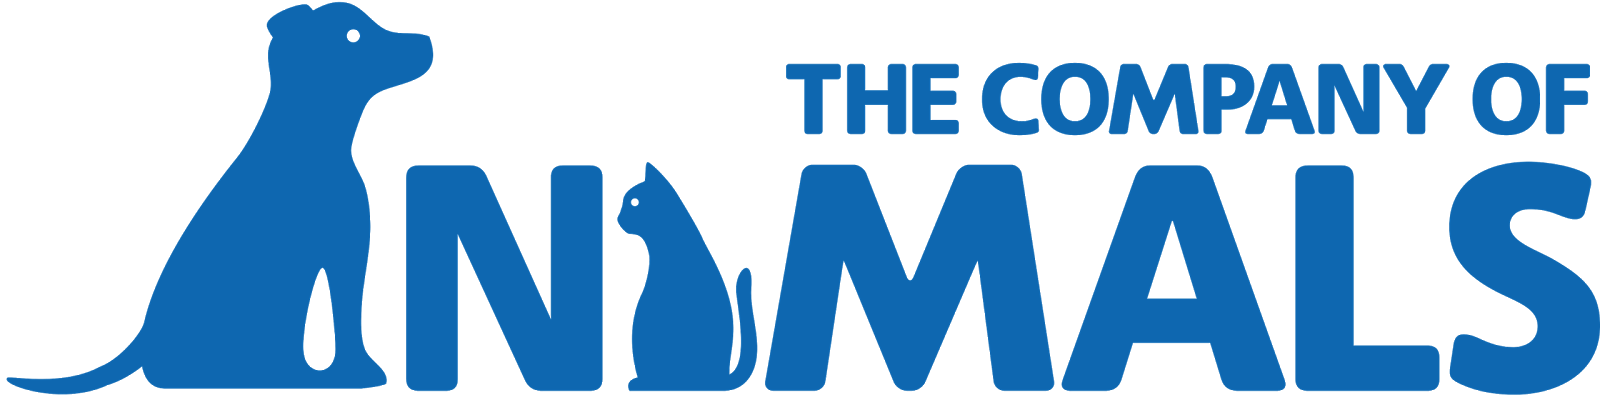 Image result for company of animals logo